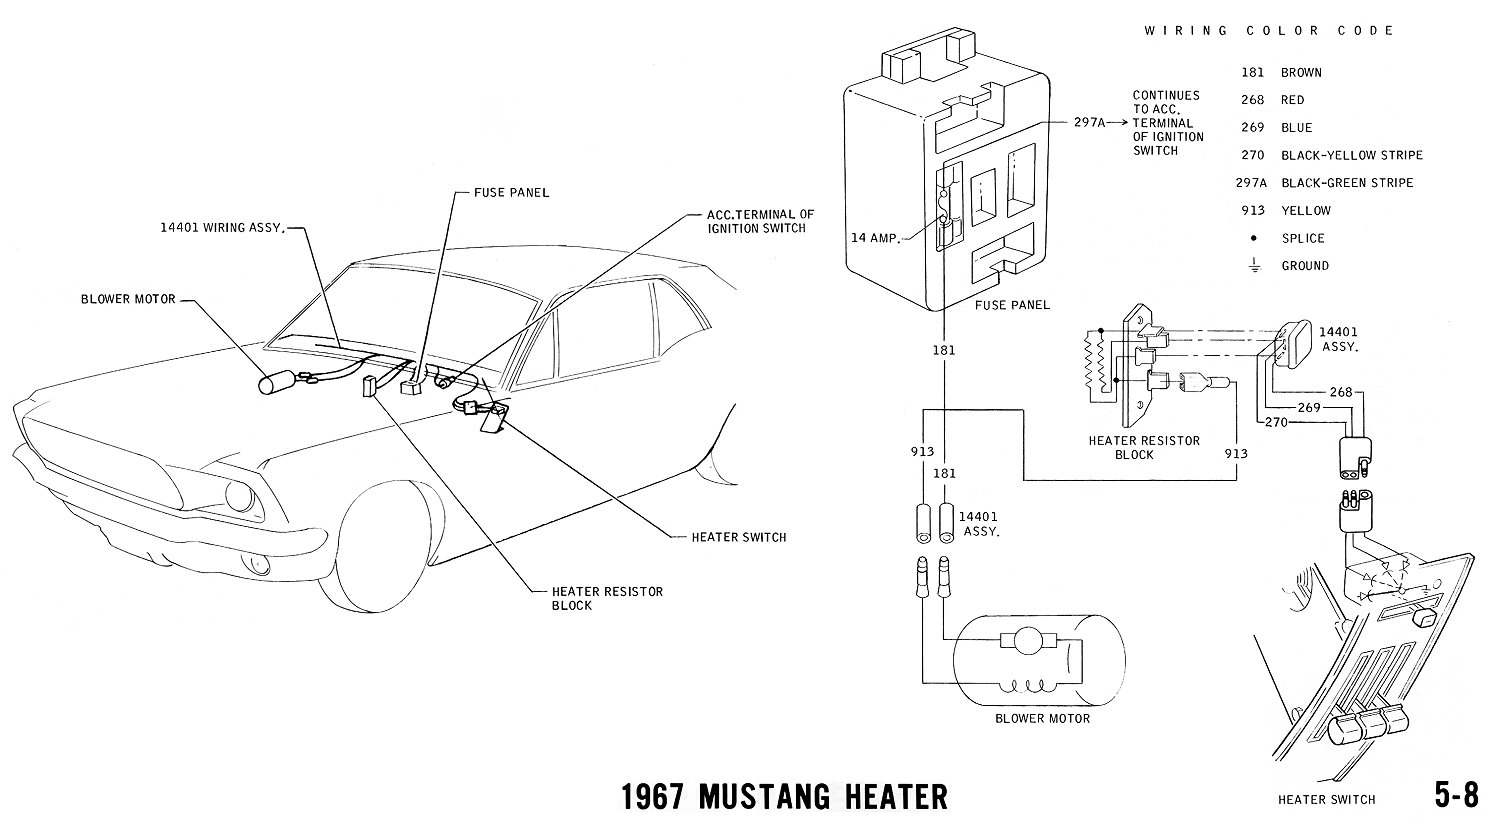 67heater 1967 mustang wiring and vacuum diagrams average joe restoration 1966 mustang heater wiring diagram at bayanpartner.co